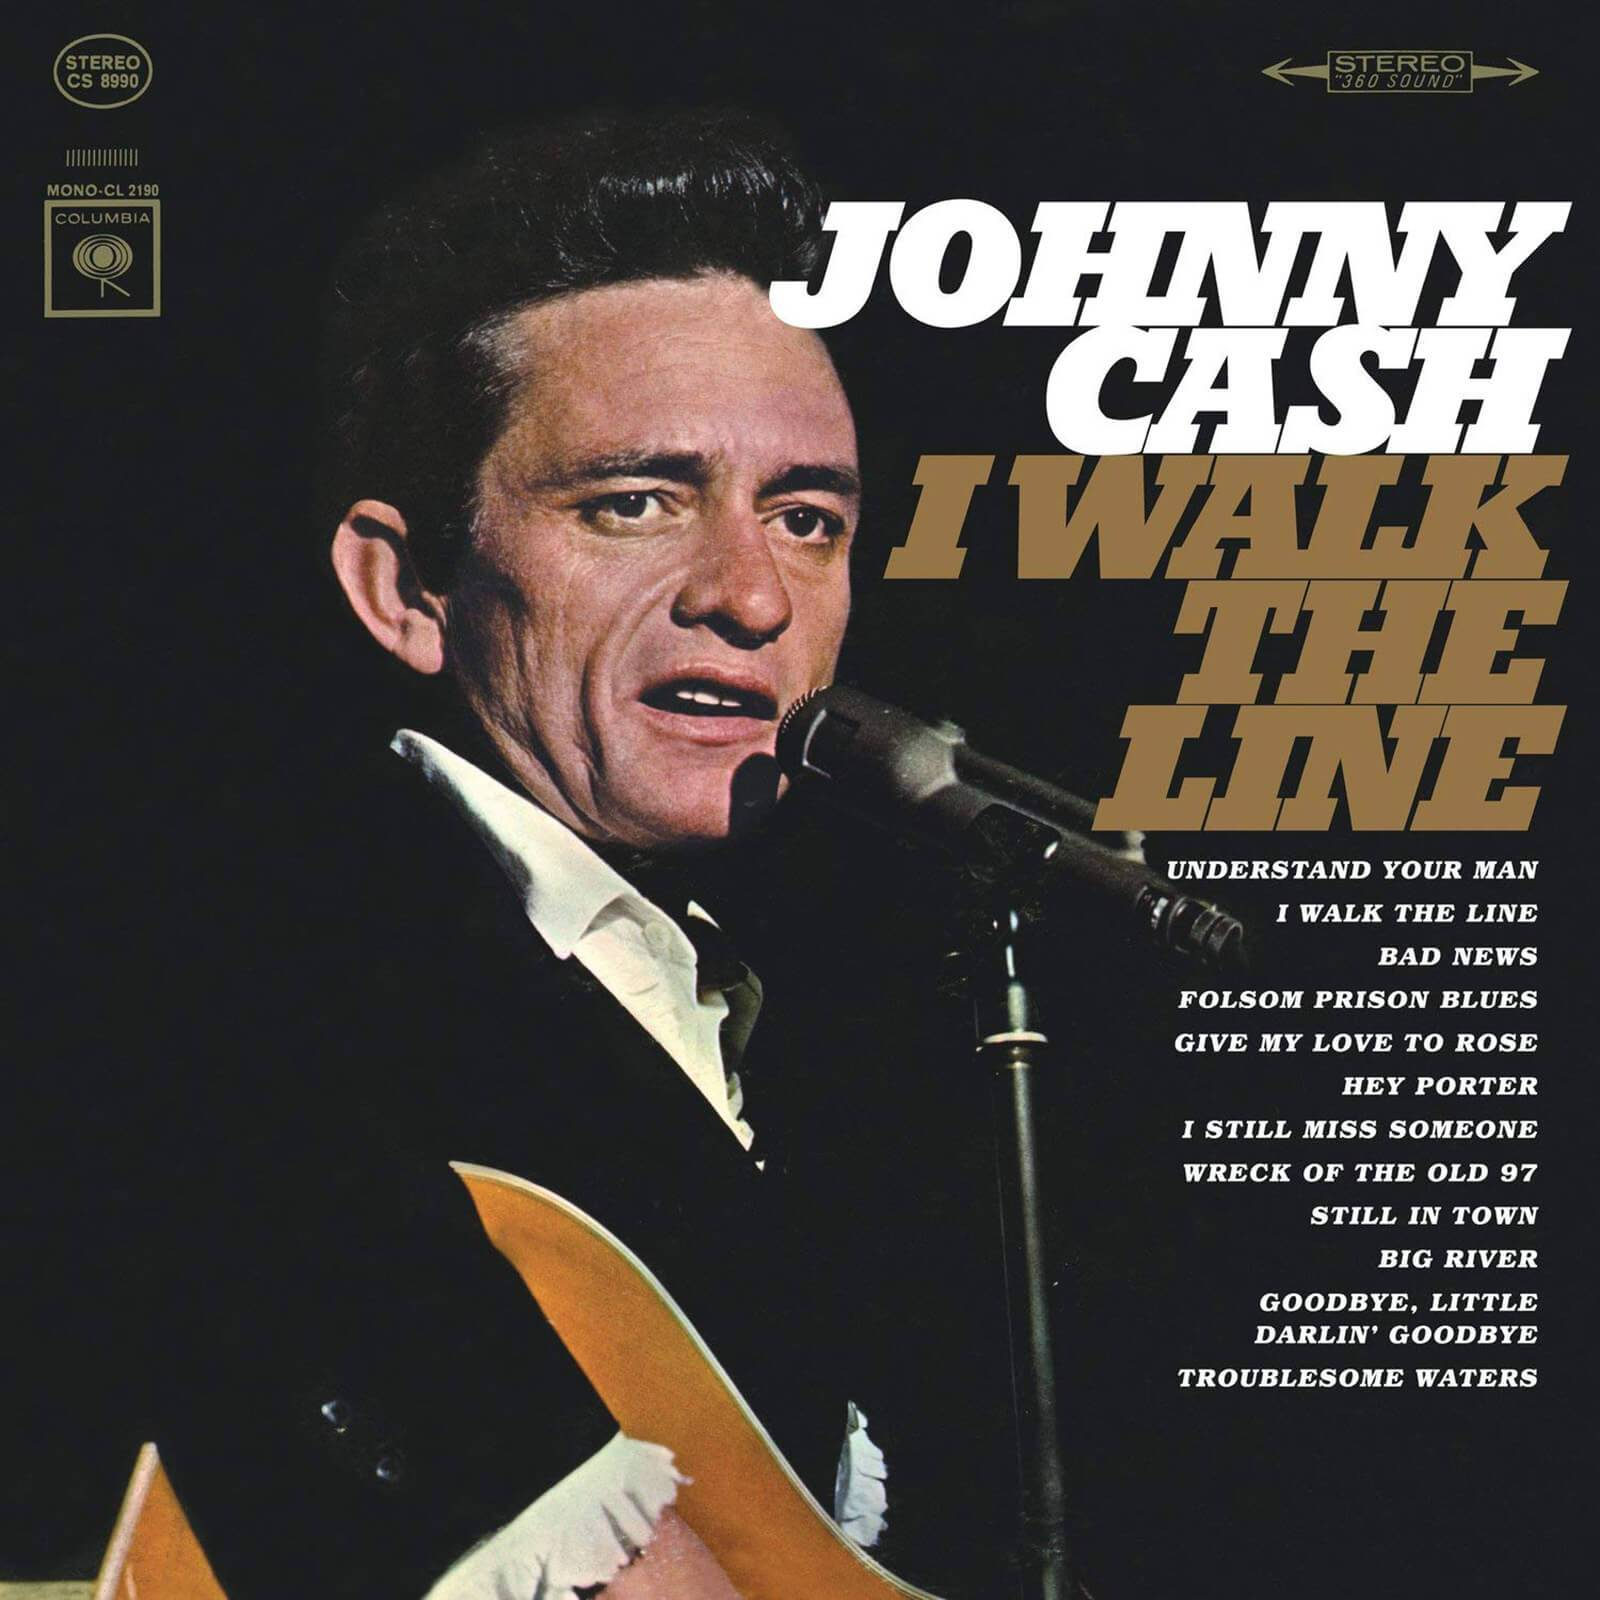 Sony Johnny Cash - I Walk The Line LP